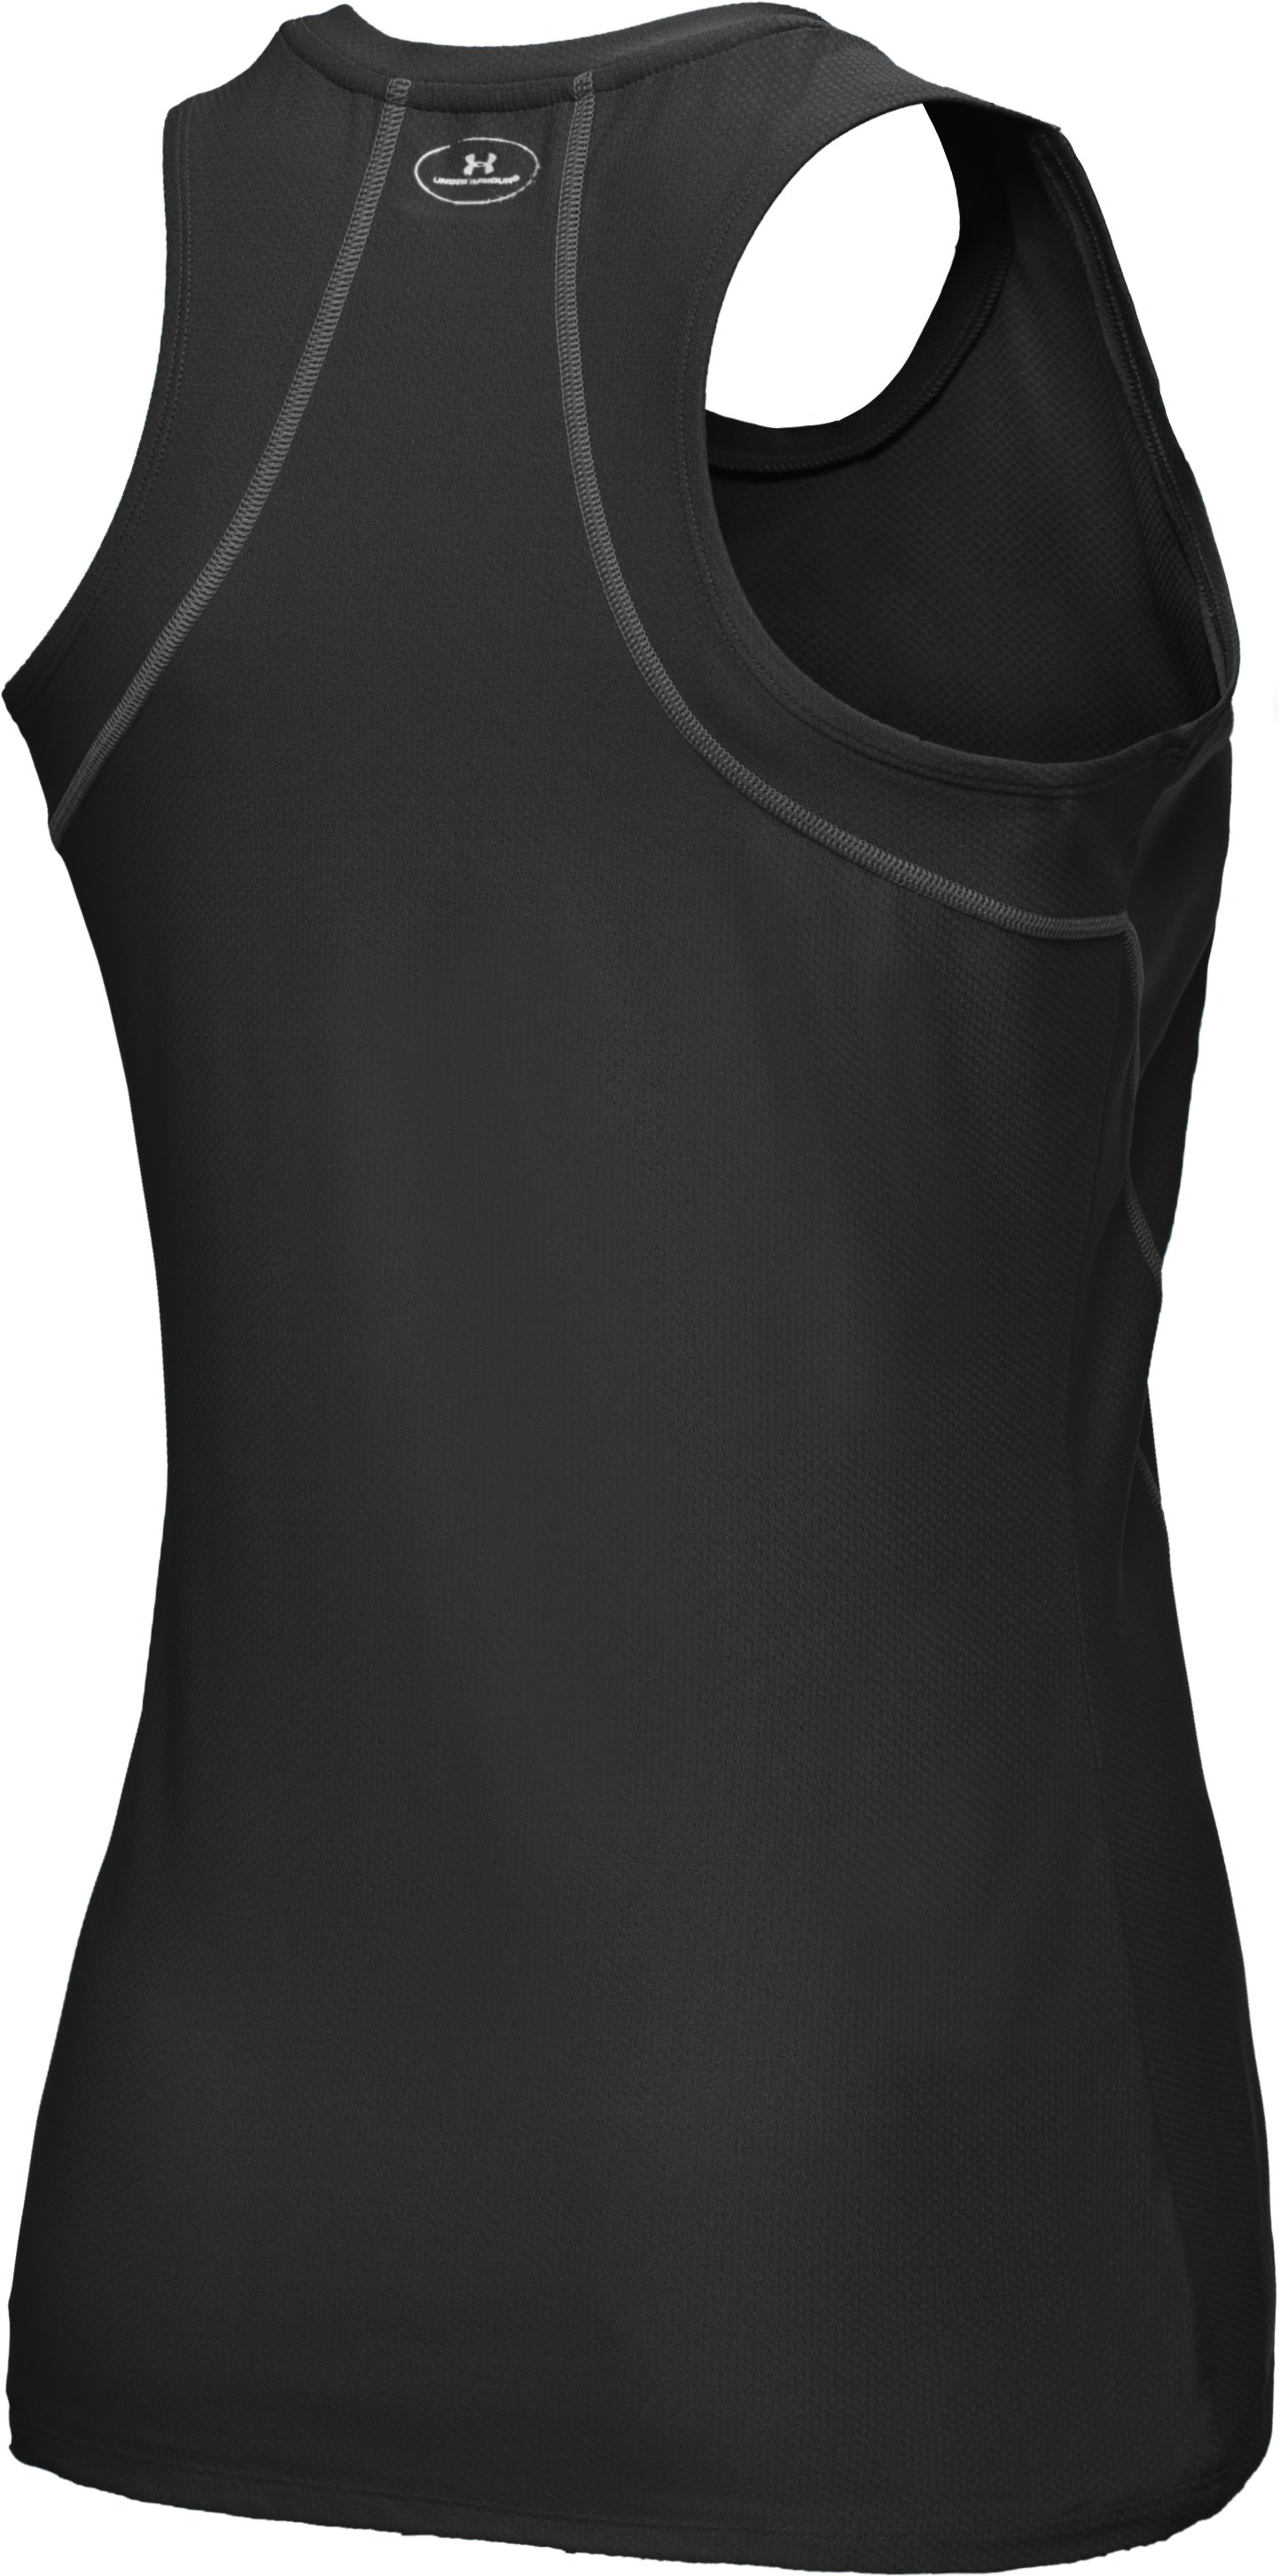 Women's UA HeatGear® Fitted Racerback Tank Top, Black